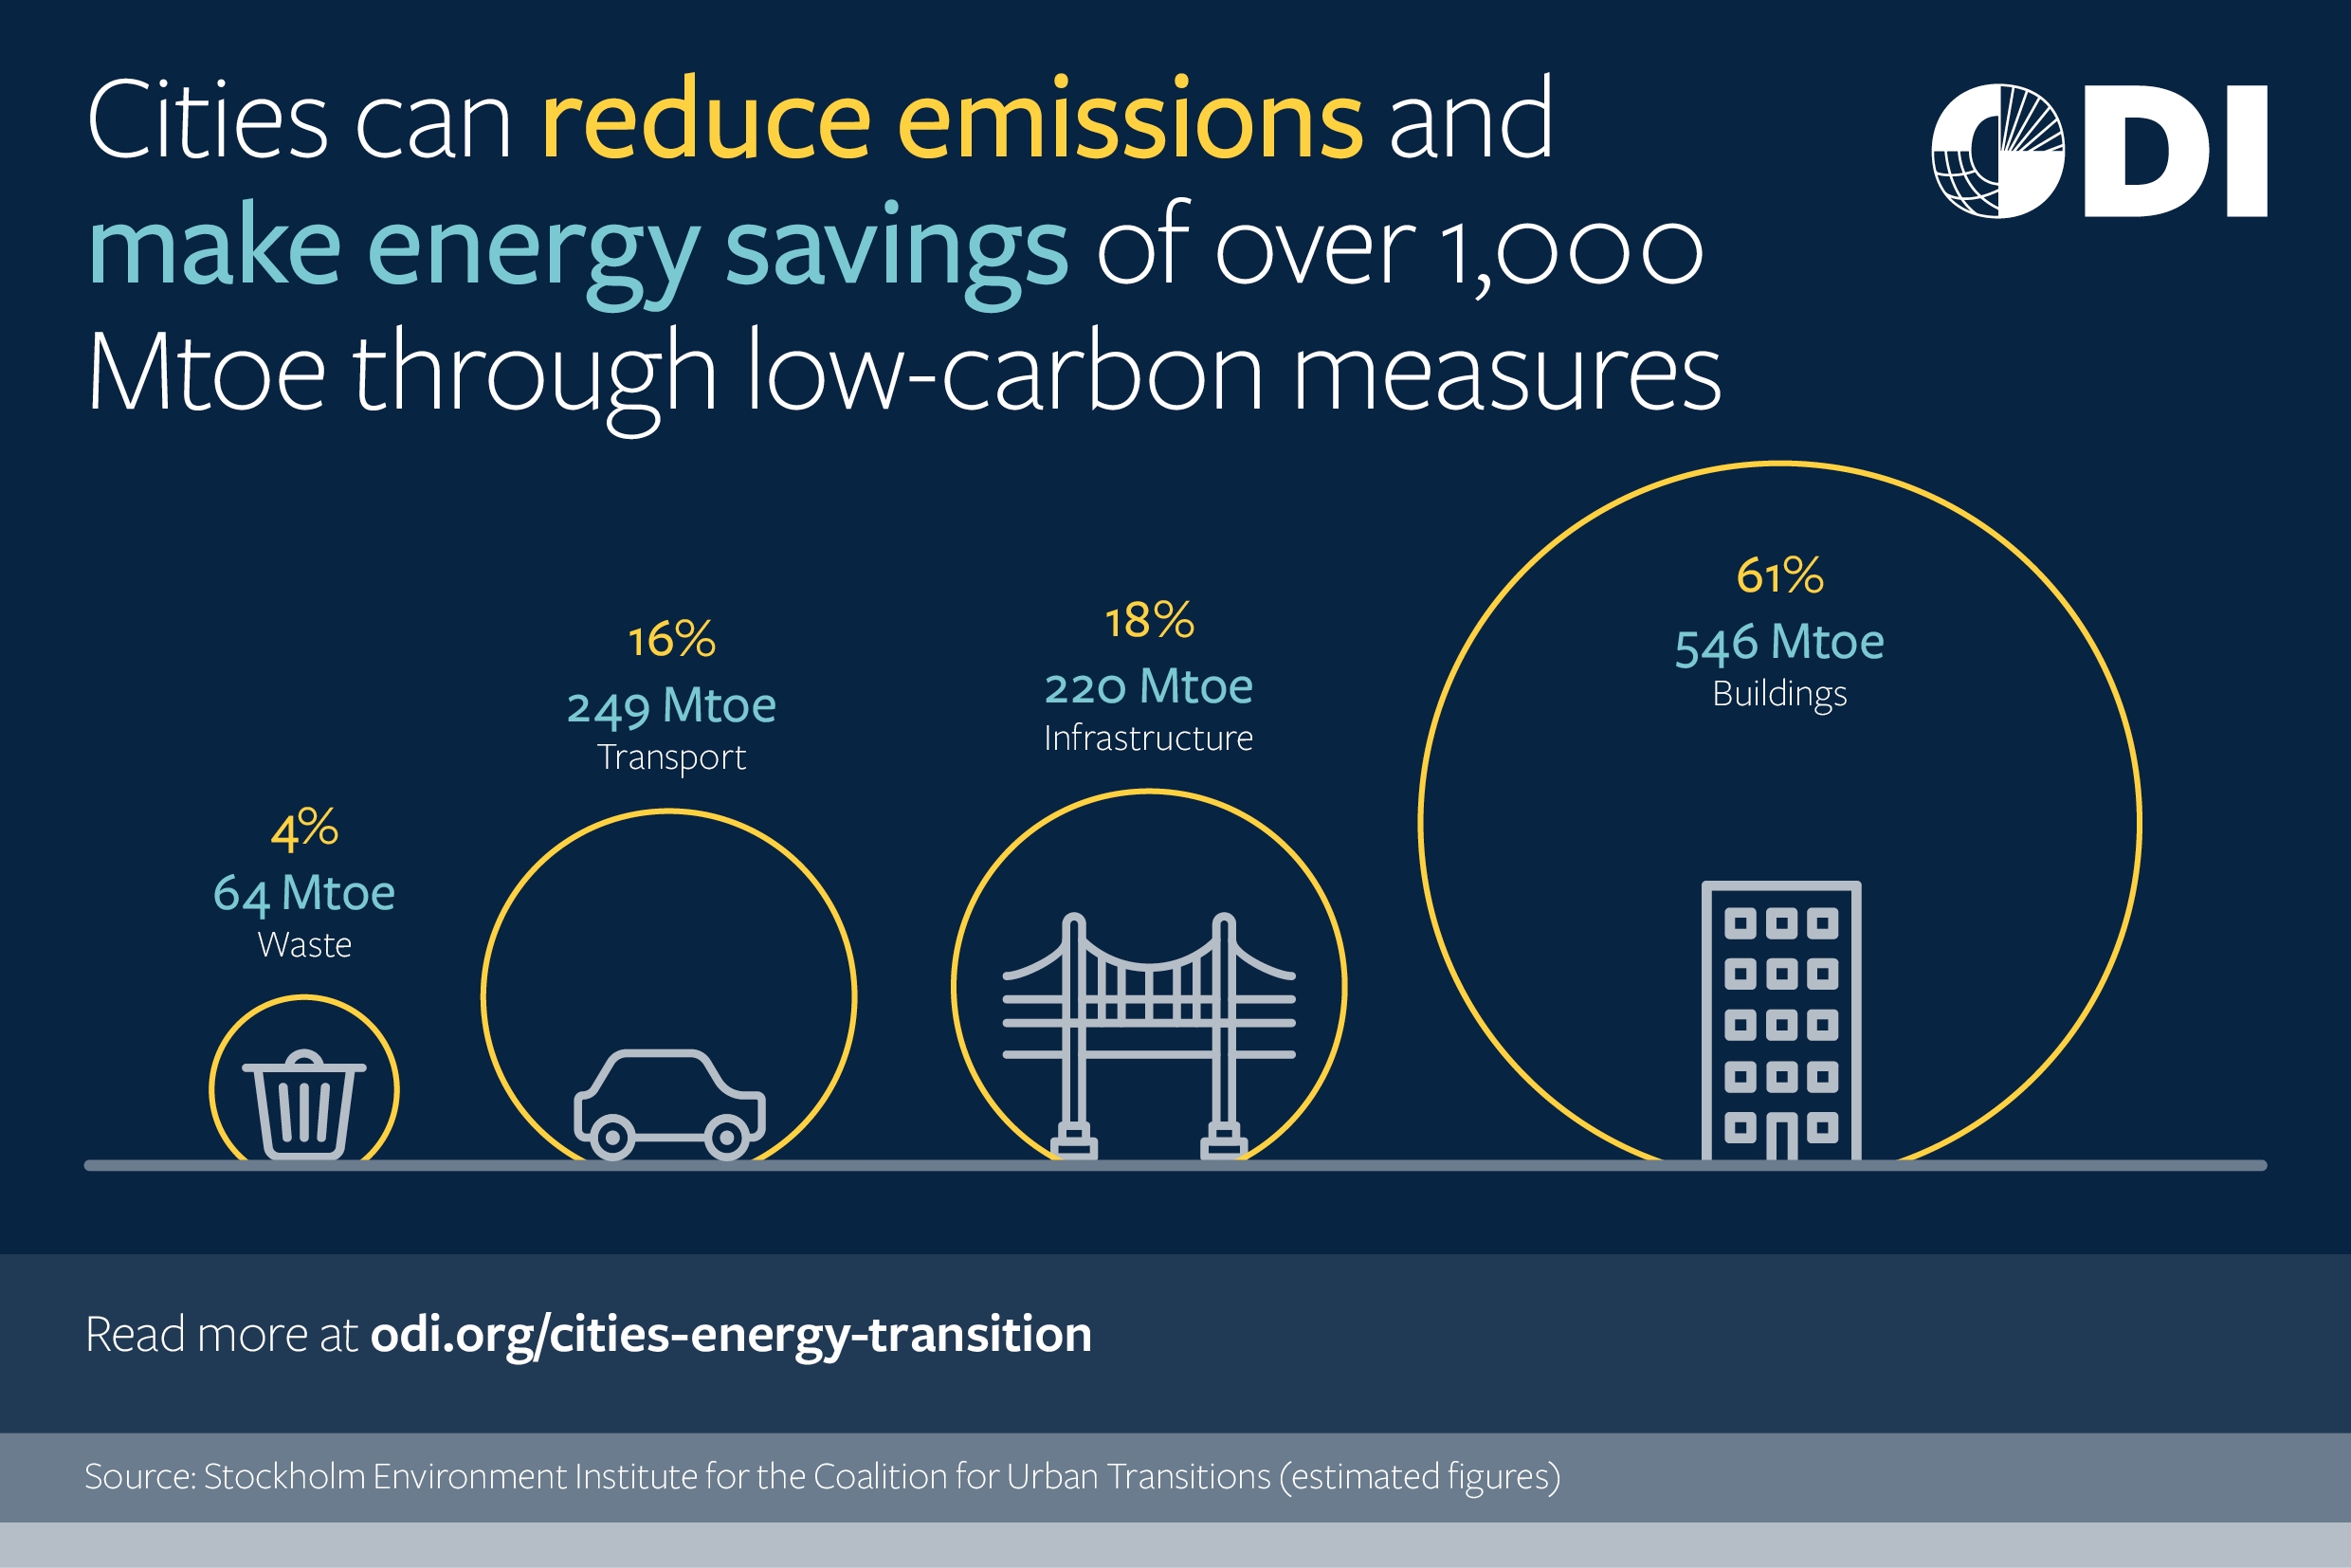 Cities can reduce emissions and make energy savings of over 1,000 Mtoe through low-carbon measures.